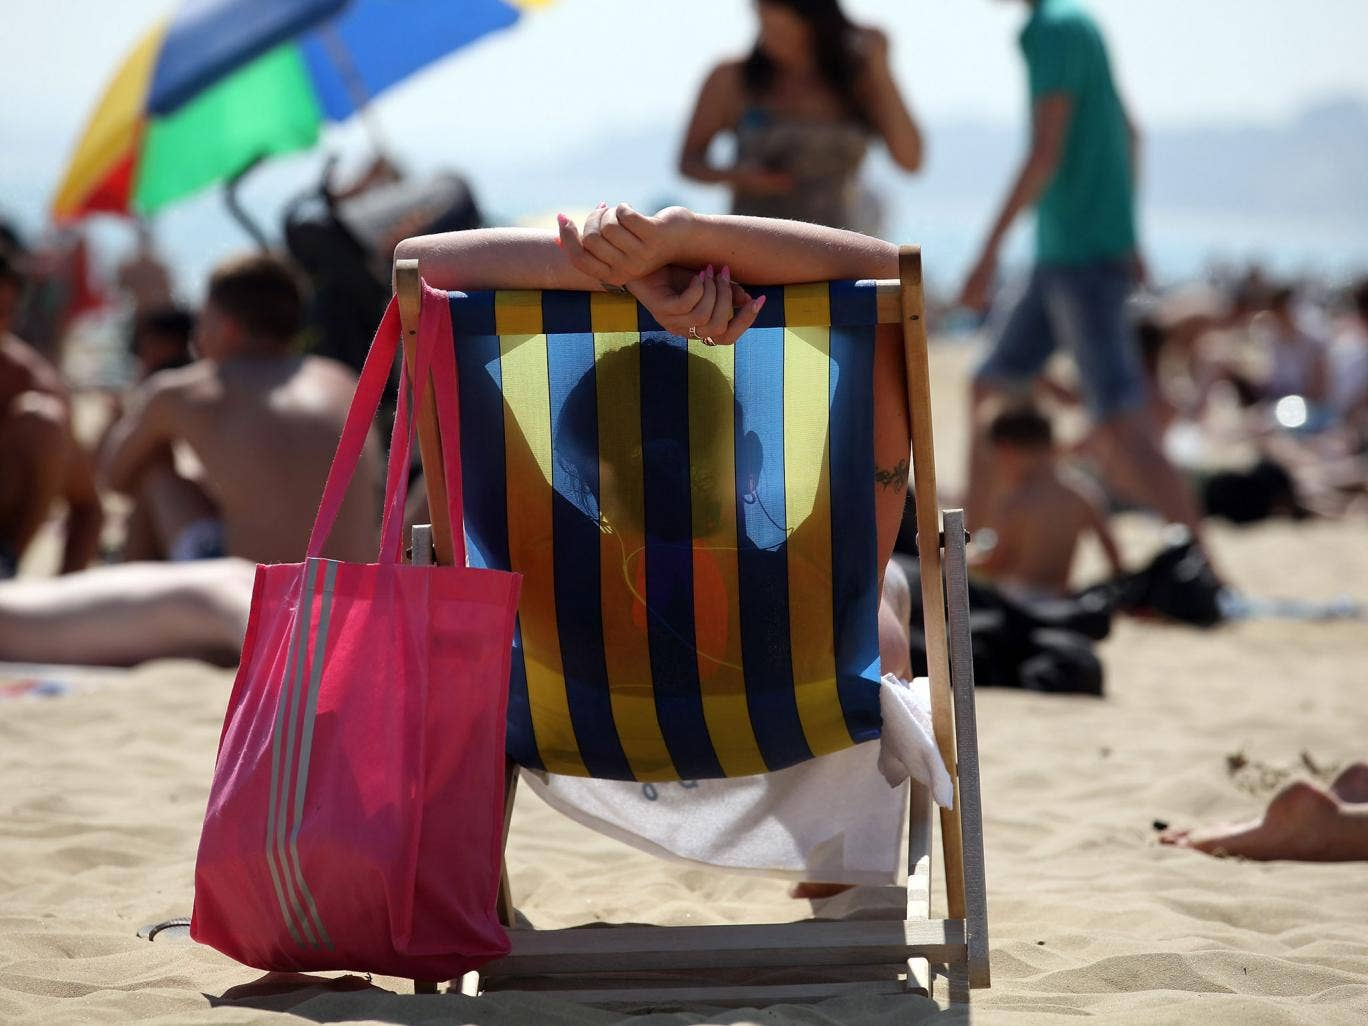 Thousands of families will not be packing their buckets and spades this bank holiday because they cannot afford to take their children to the beach